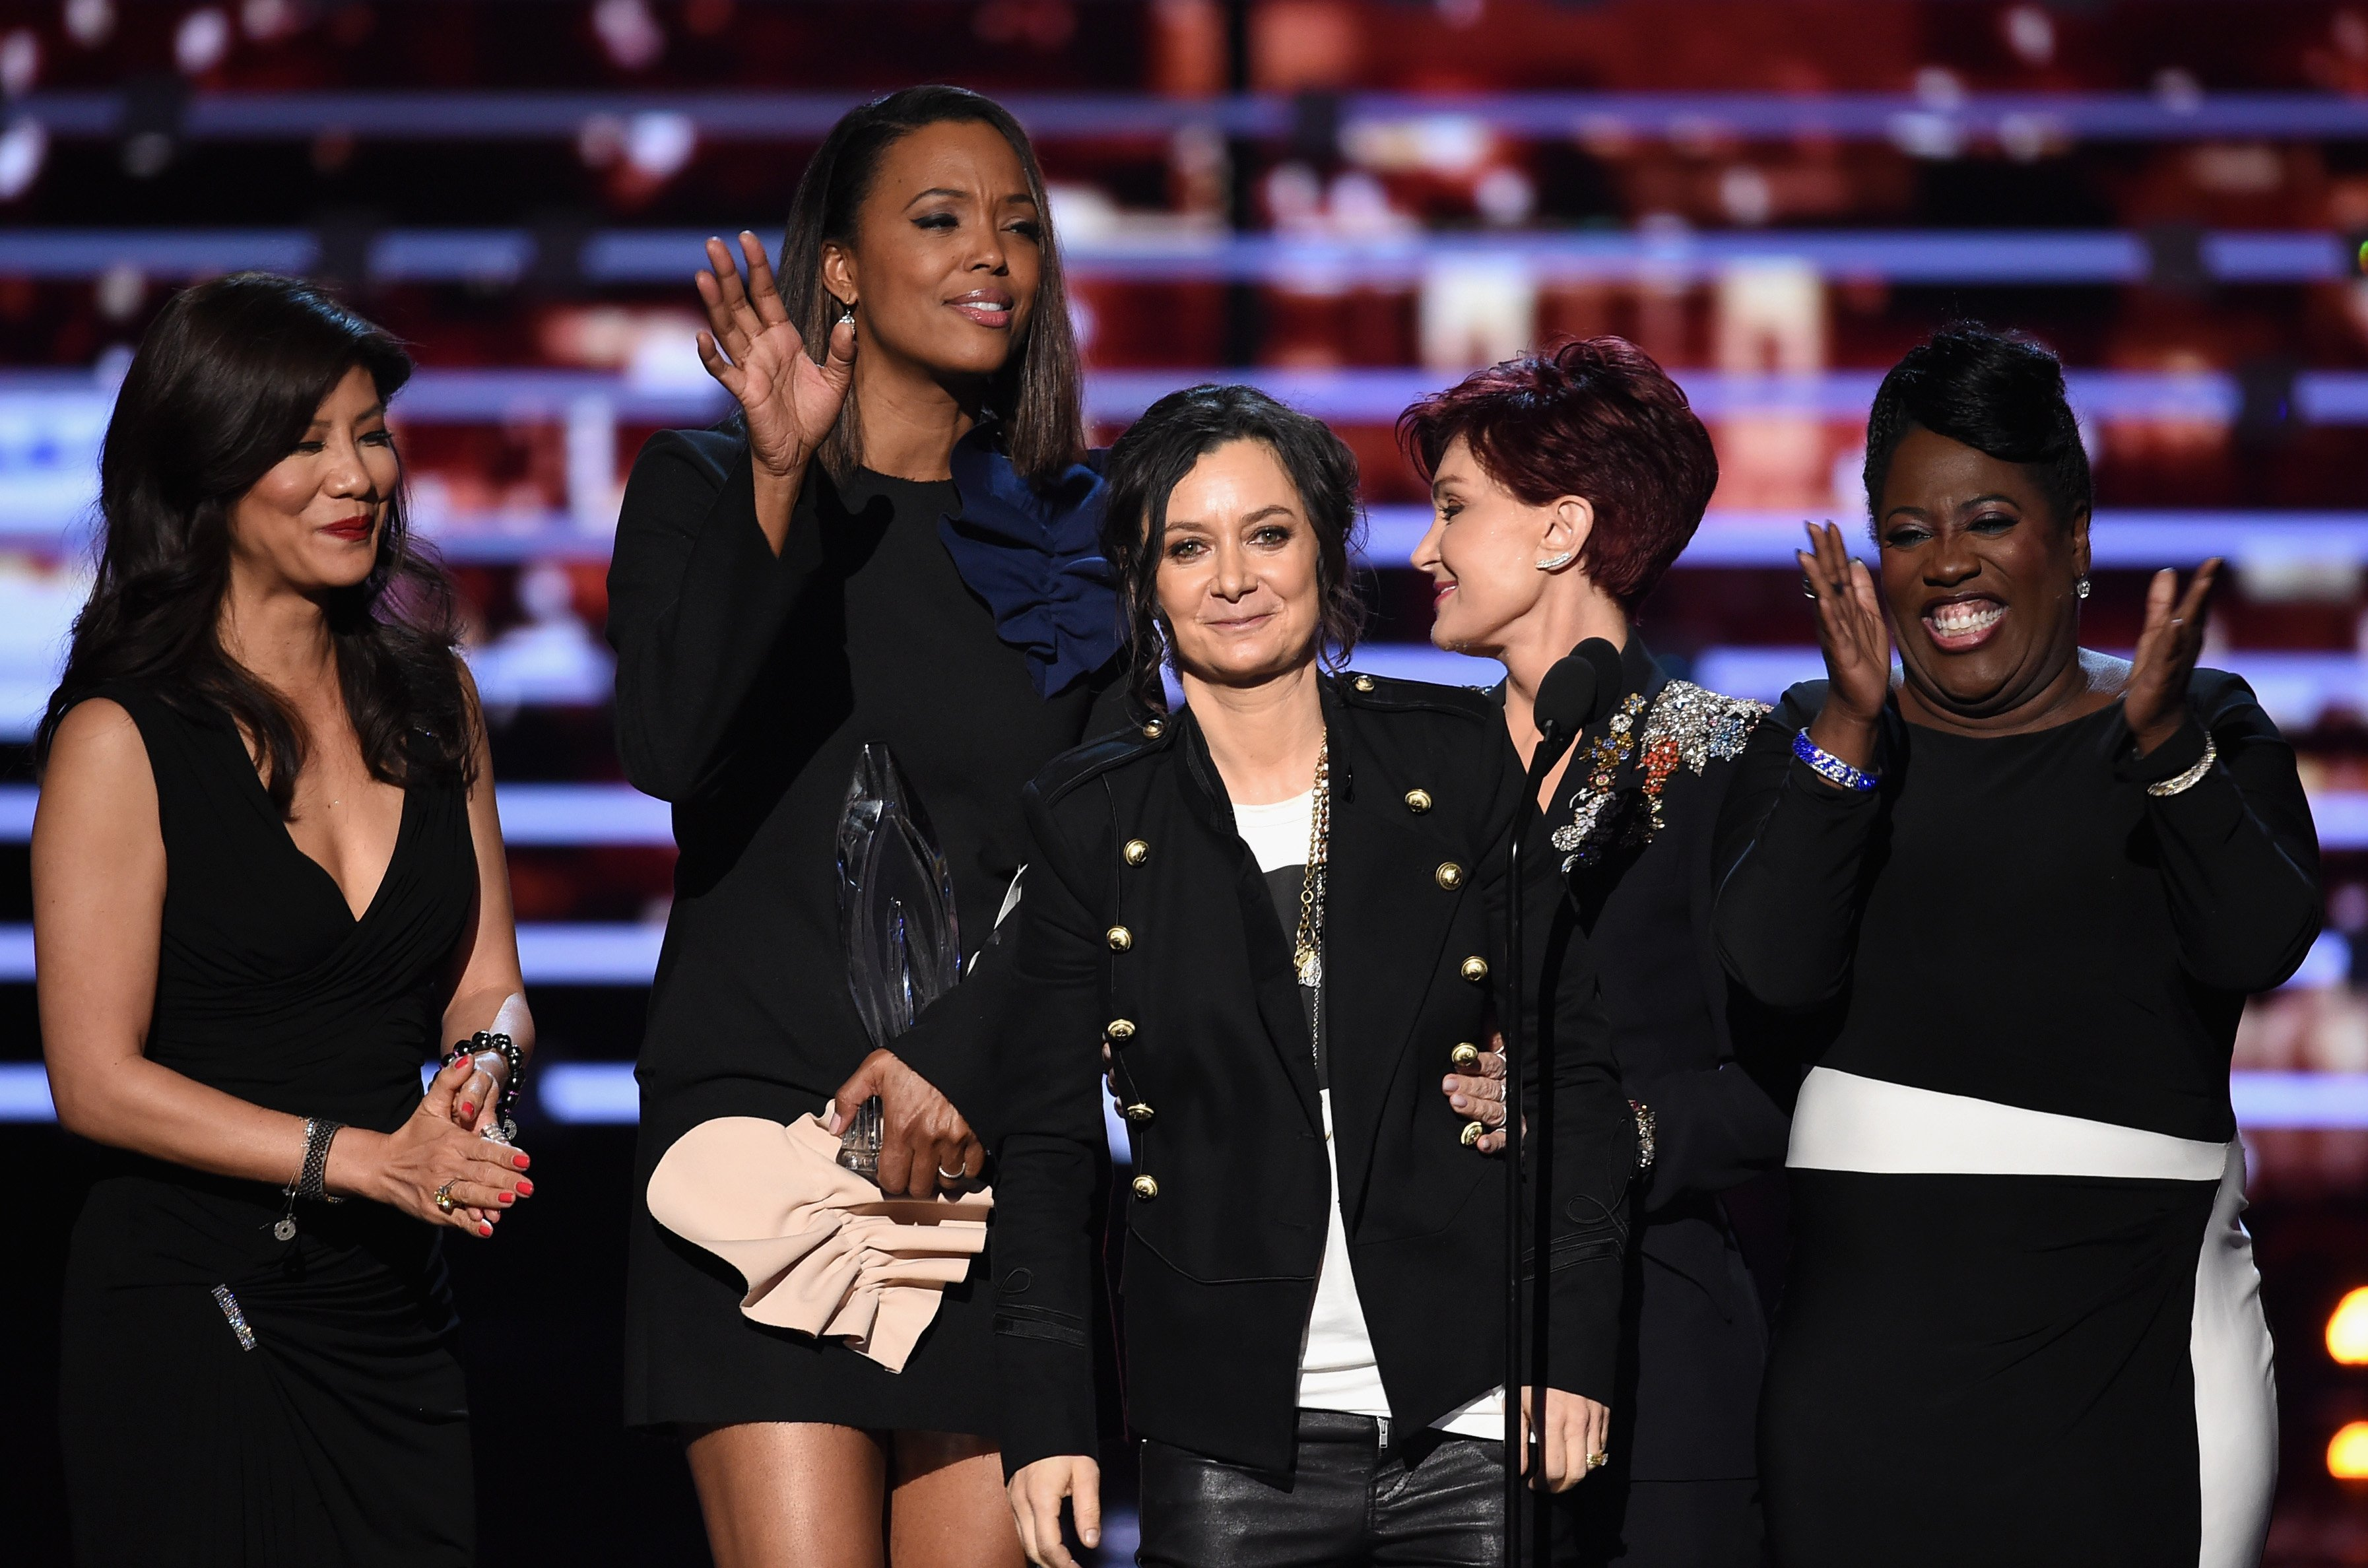 """TV personalities Julie Chen, Aisha Tyler, Sara Gilbert, Sharon Osbourne, and Sheryl Underwood win the award for Favorite Daytime Talk Show Hosting Team for """"The Talk"""" at the People's Choice Awards in Los Angeles on January 6, 2016 